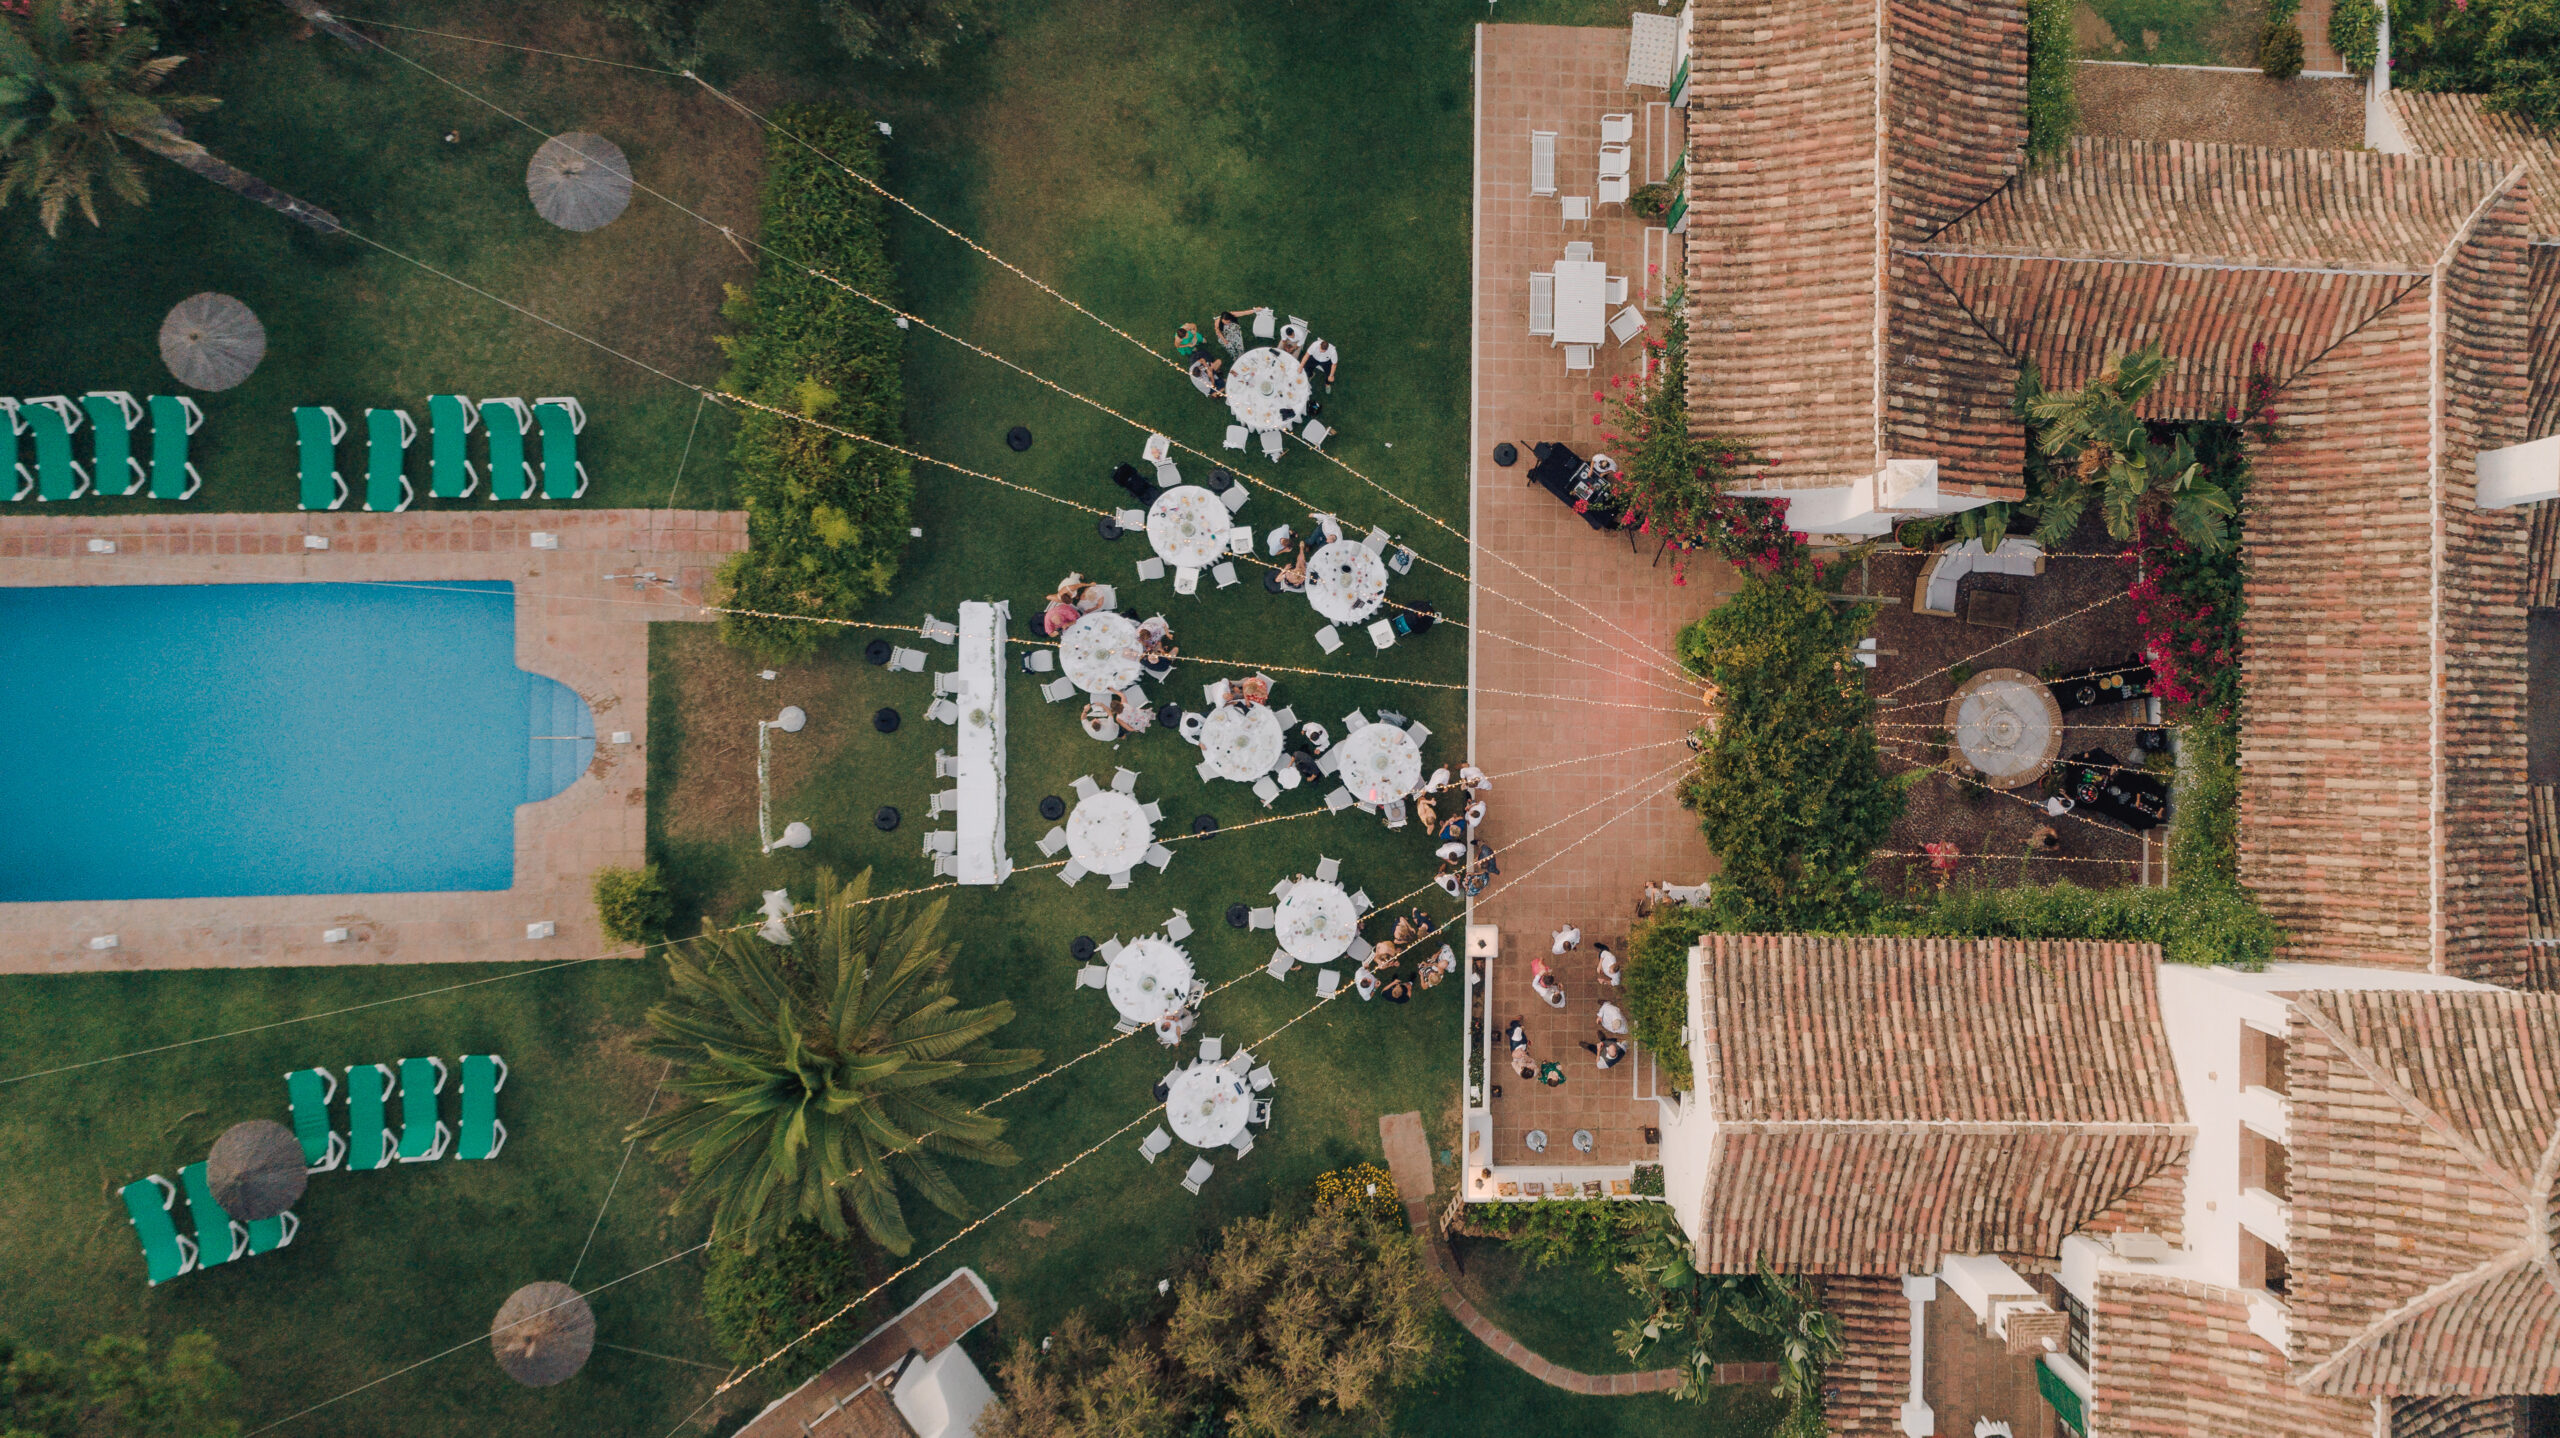 Aerial shot of the garden layout and pool - Hove & Co Photography